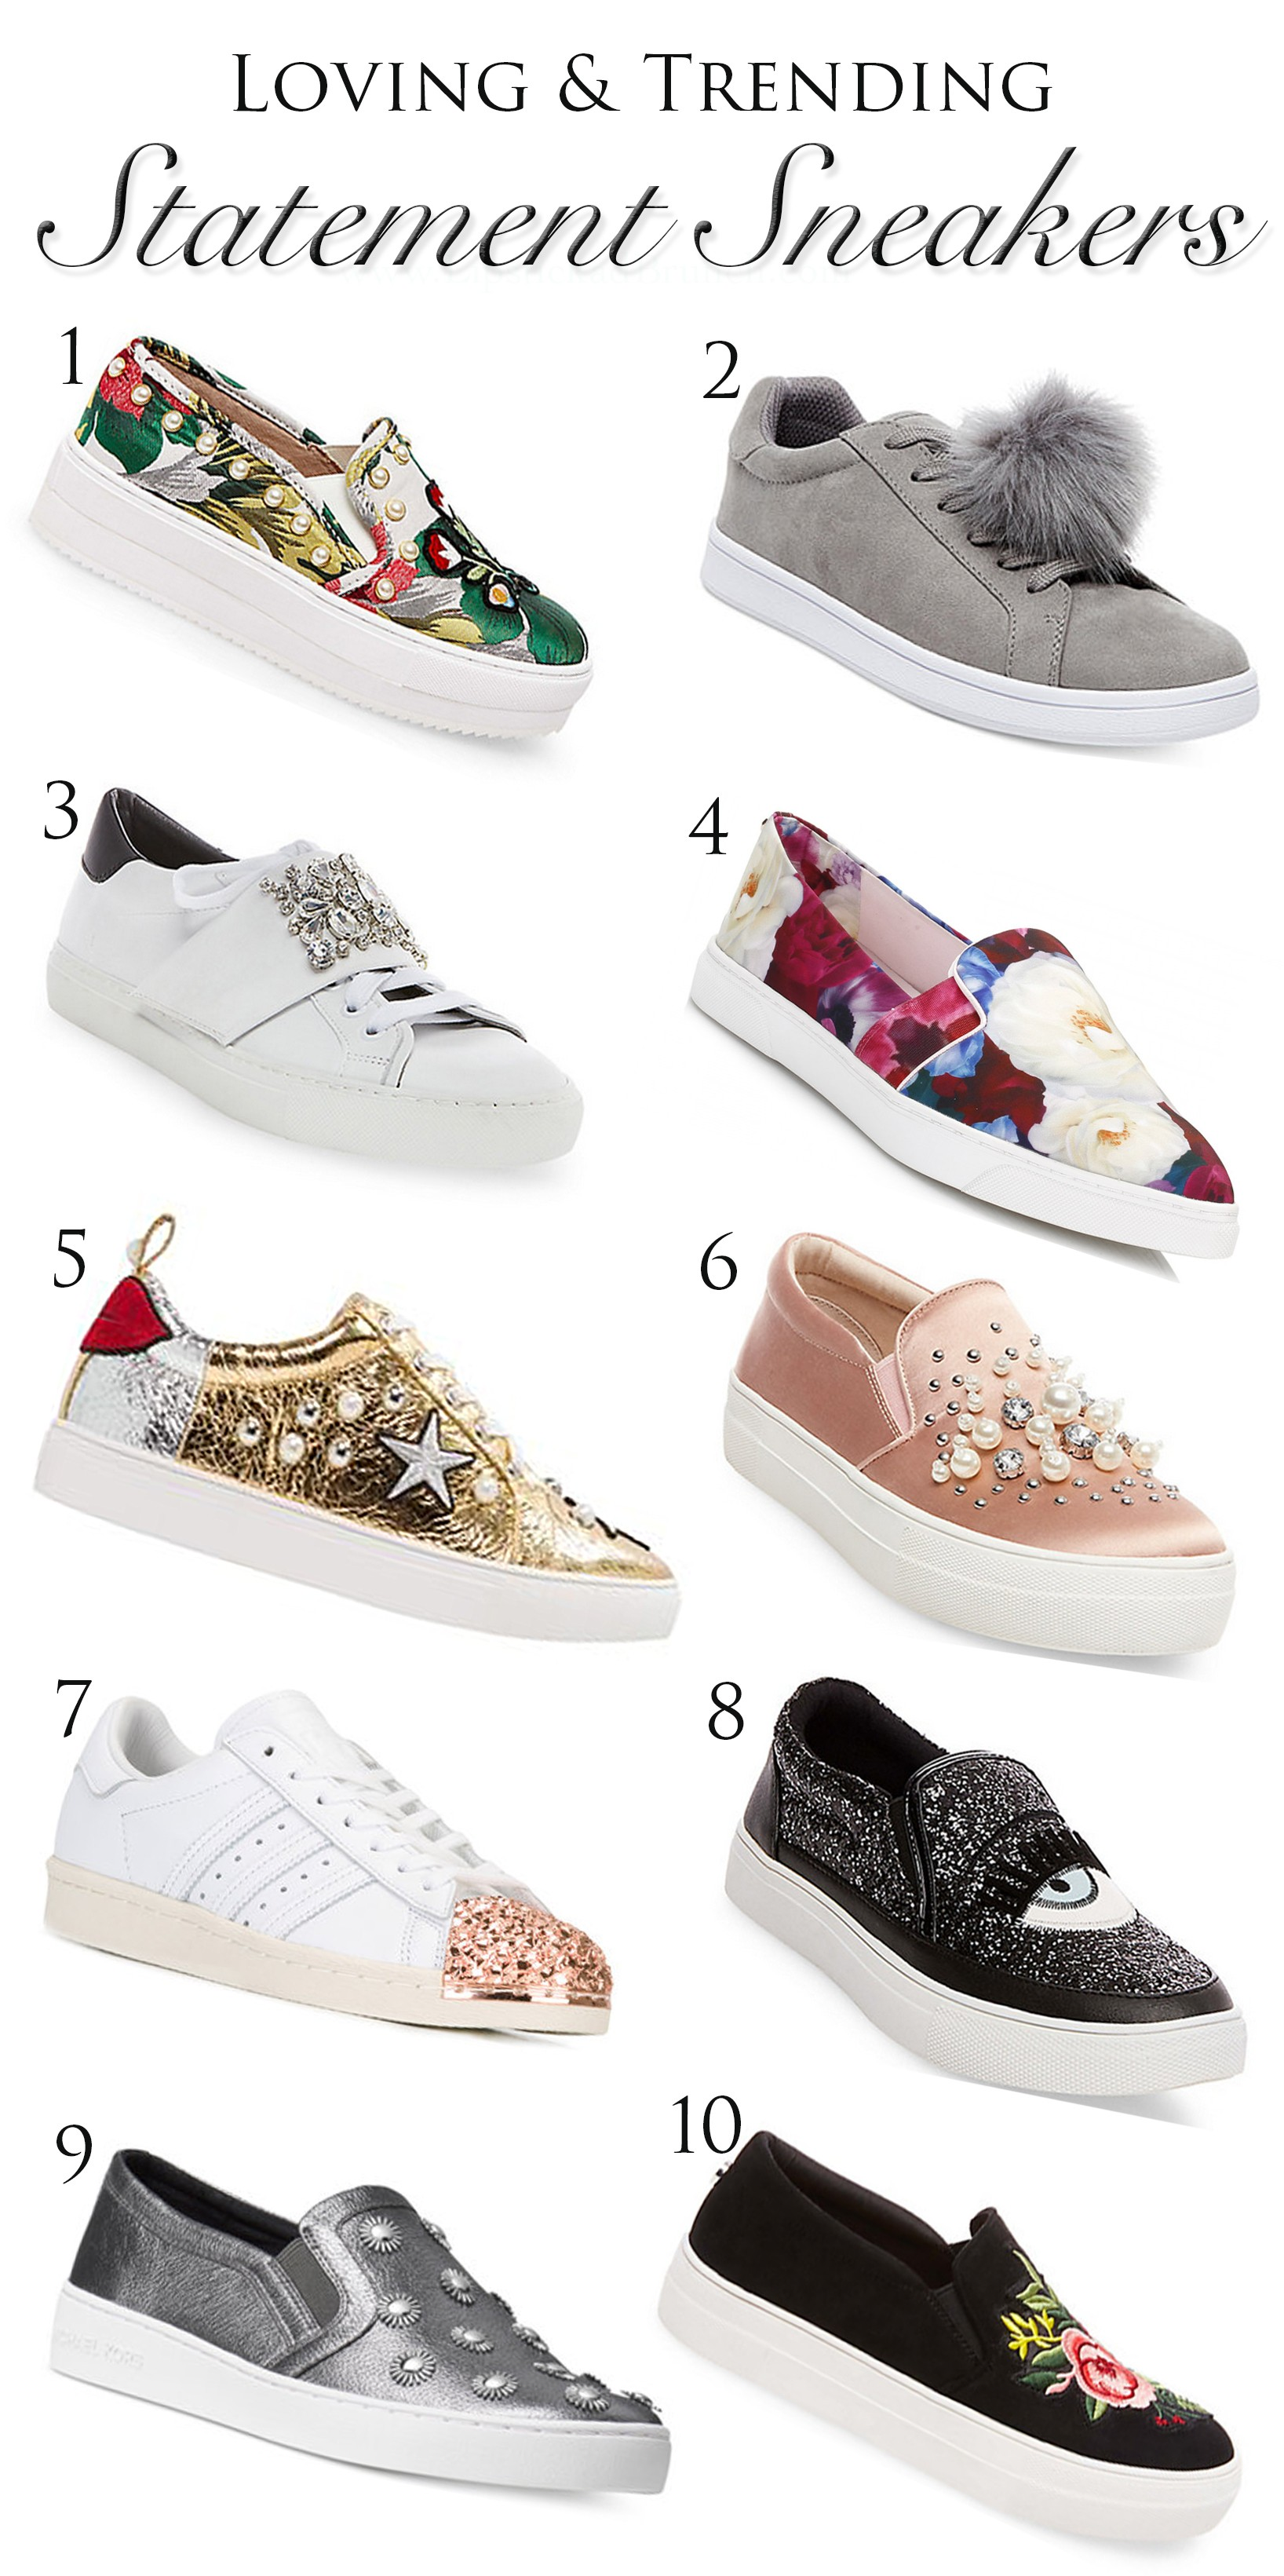 5a21c276206 I sincerely can't pick just one but I'm crushing hard on the gold sneakers  with the lips on the back and on the crisp white lace-up sneakers with an  ...